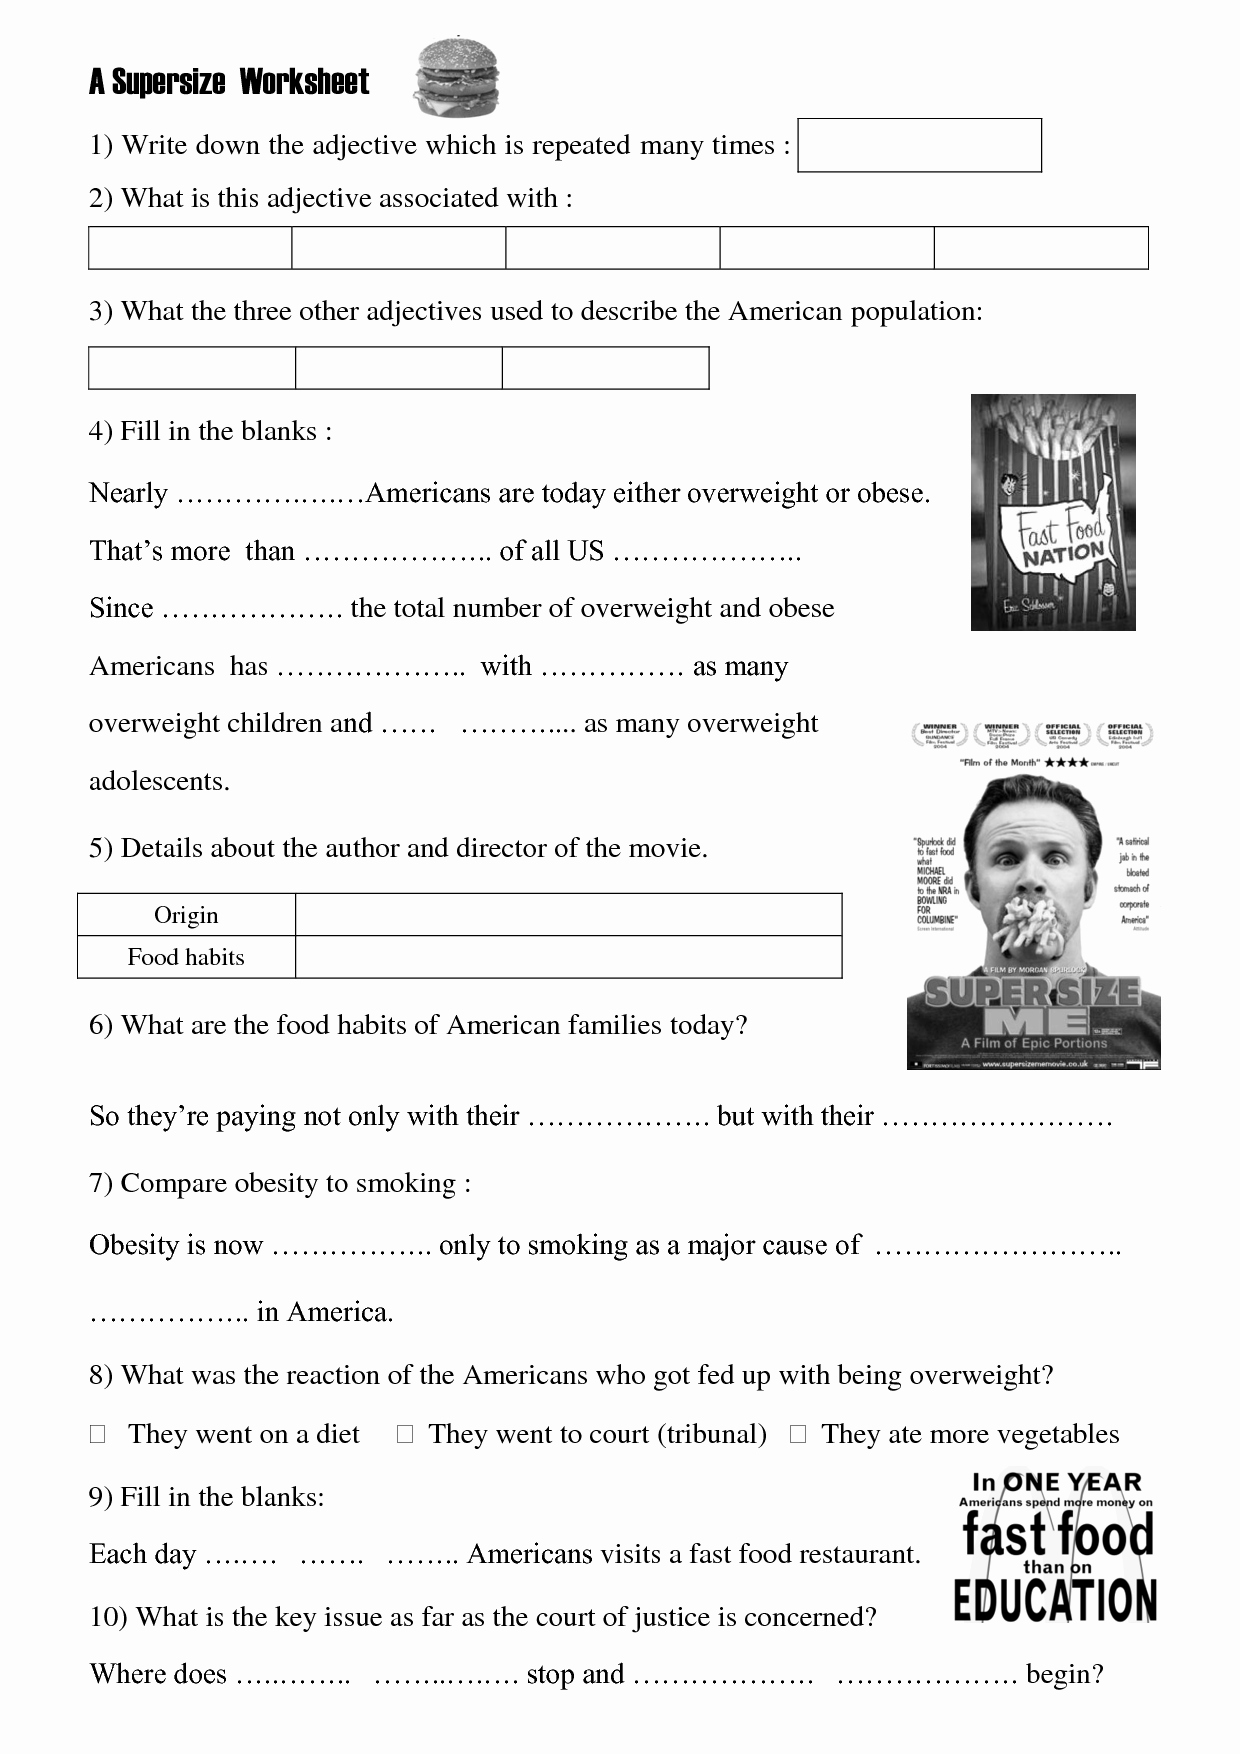 Super Size Me Video Worksheet Unique Movie Worksheet Super Size Me Health Class